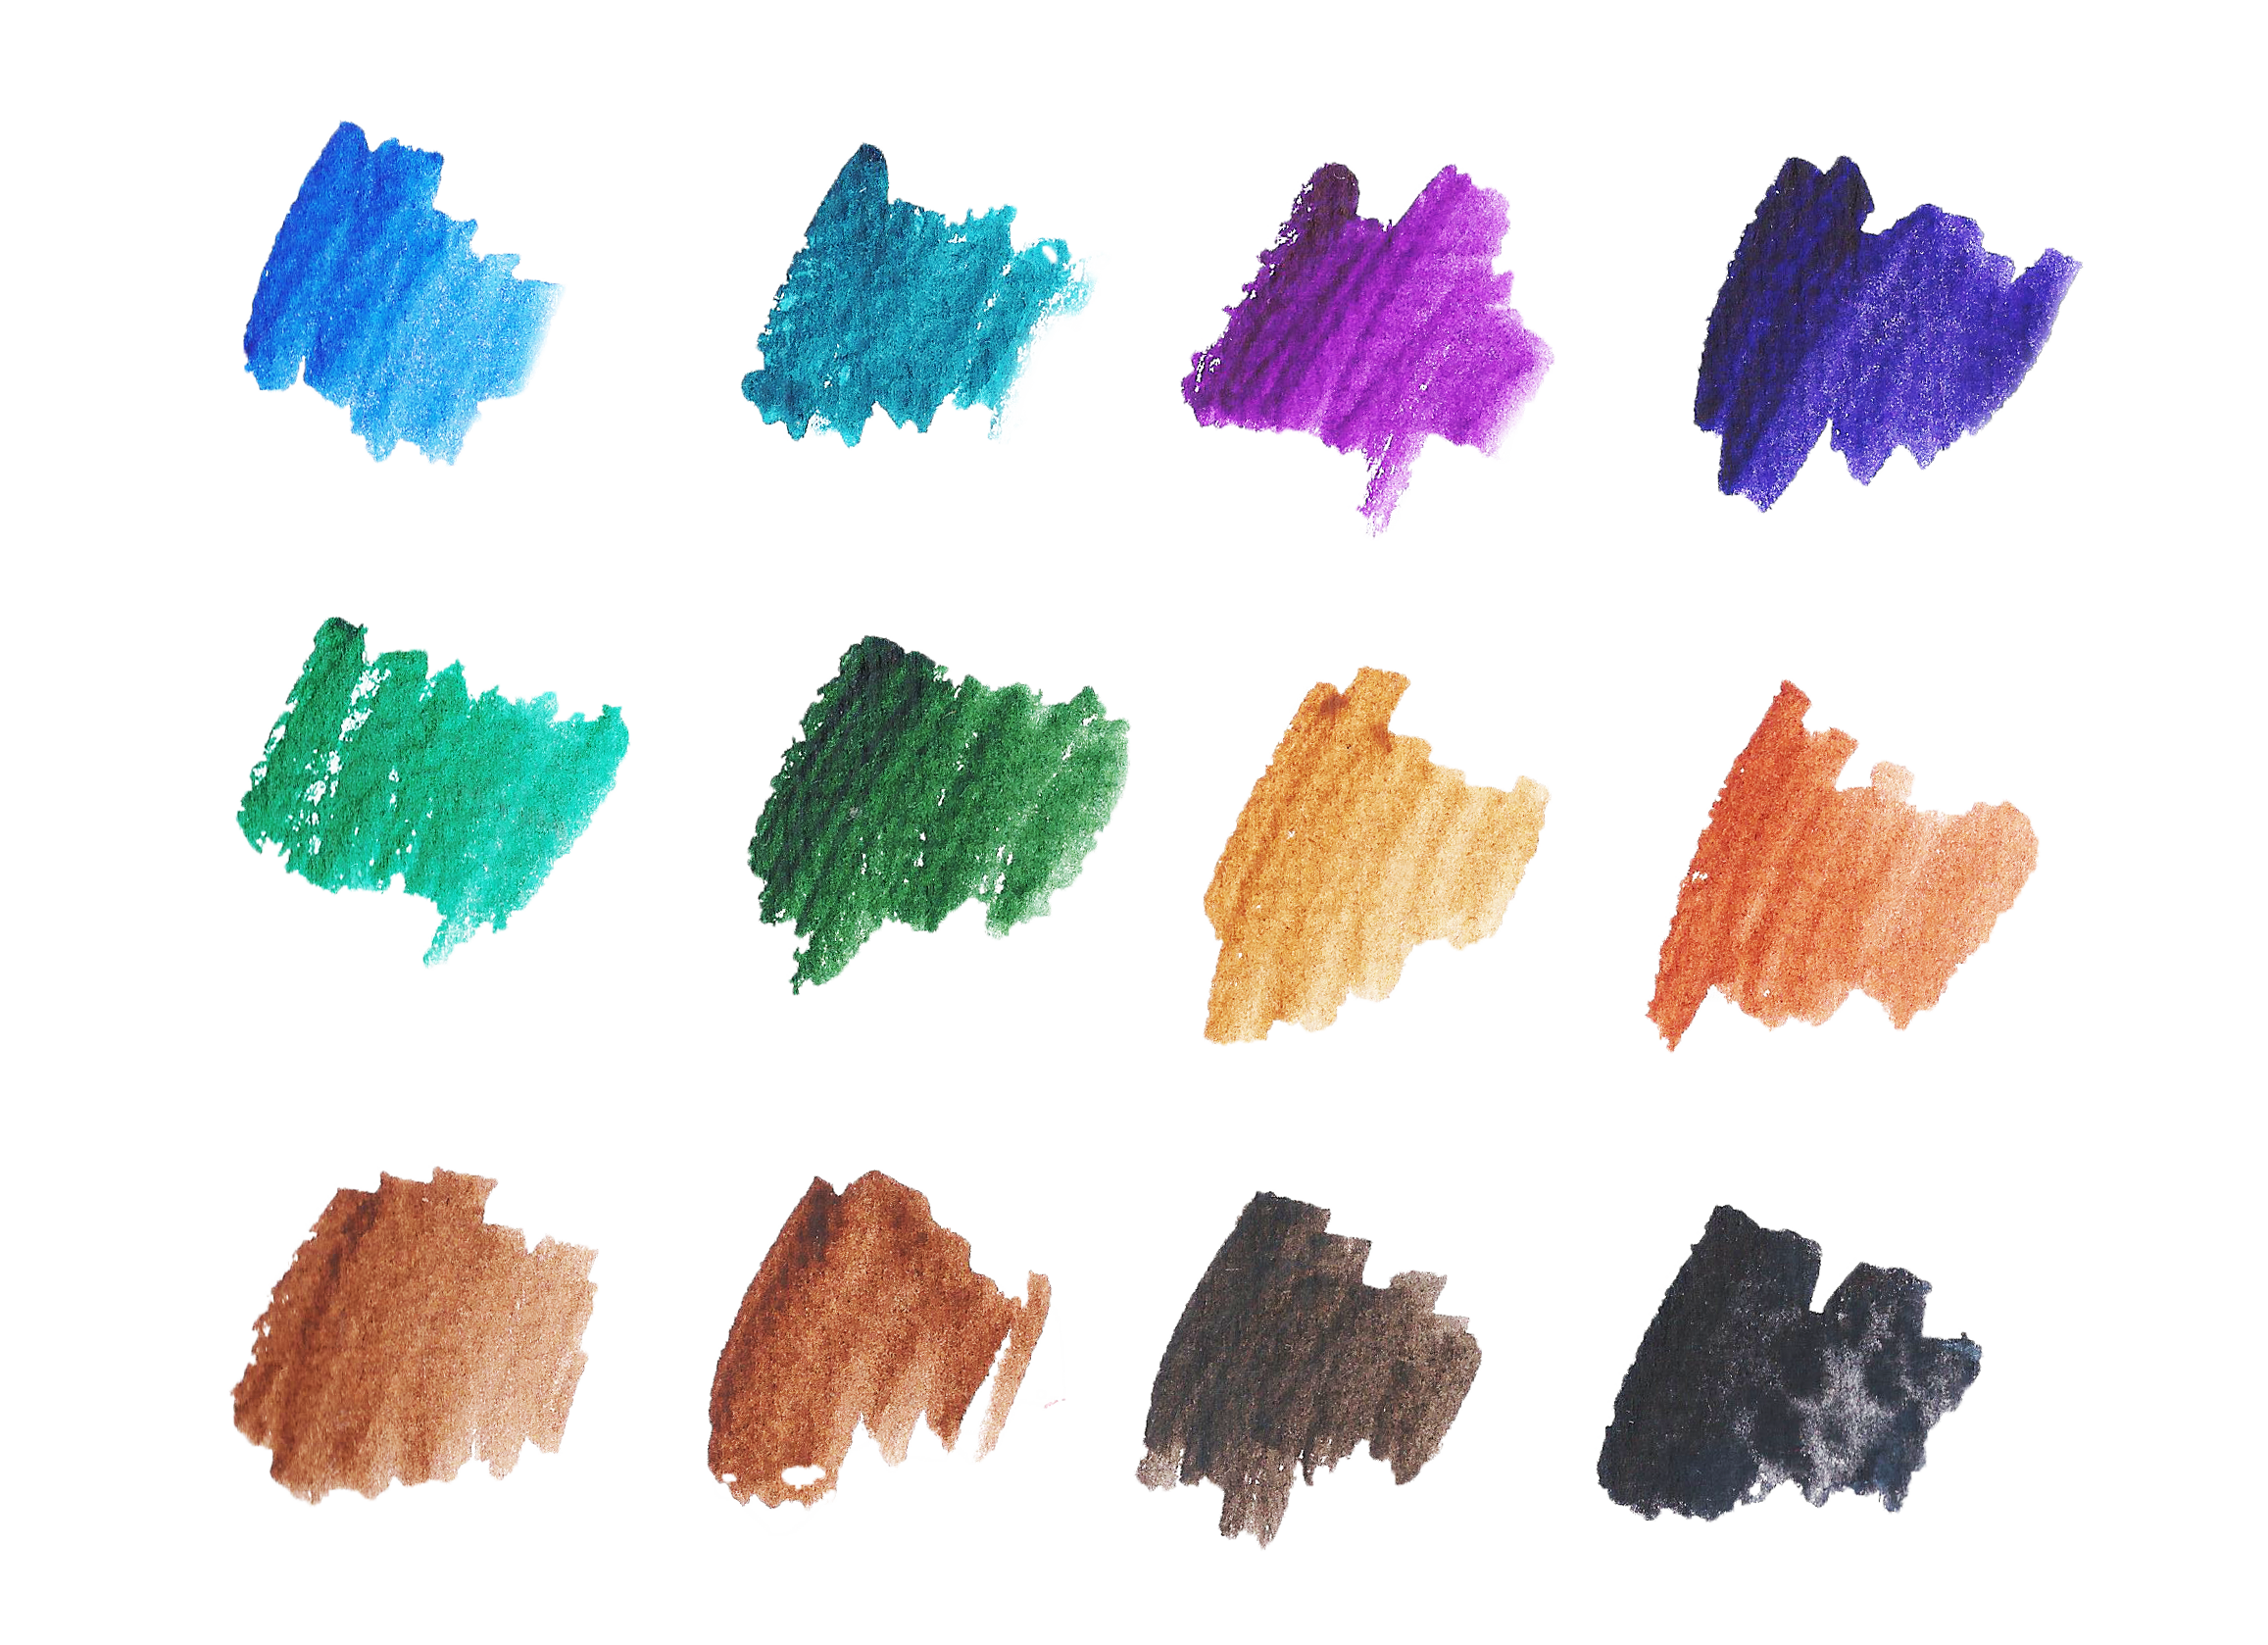 Basic Watercolor Shapes example image 3